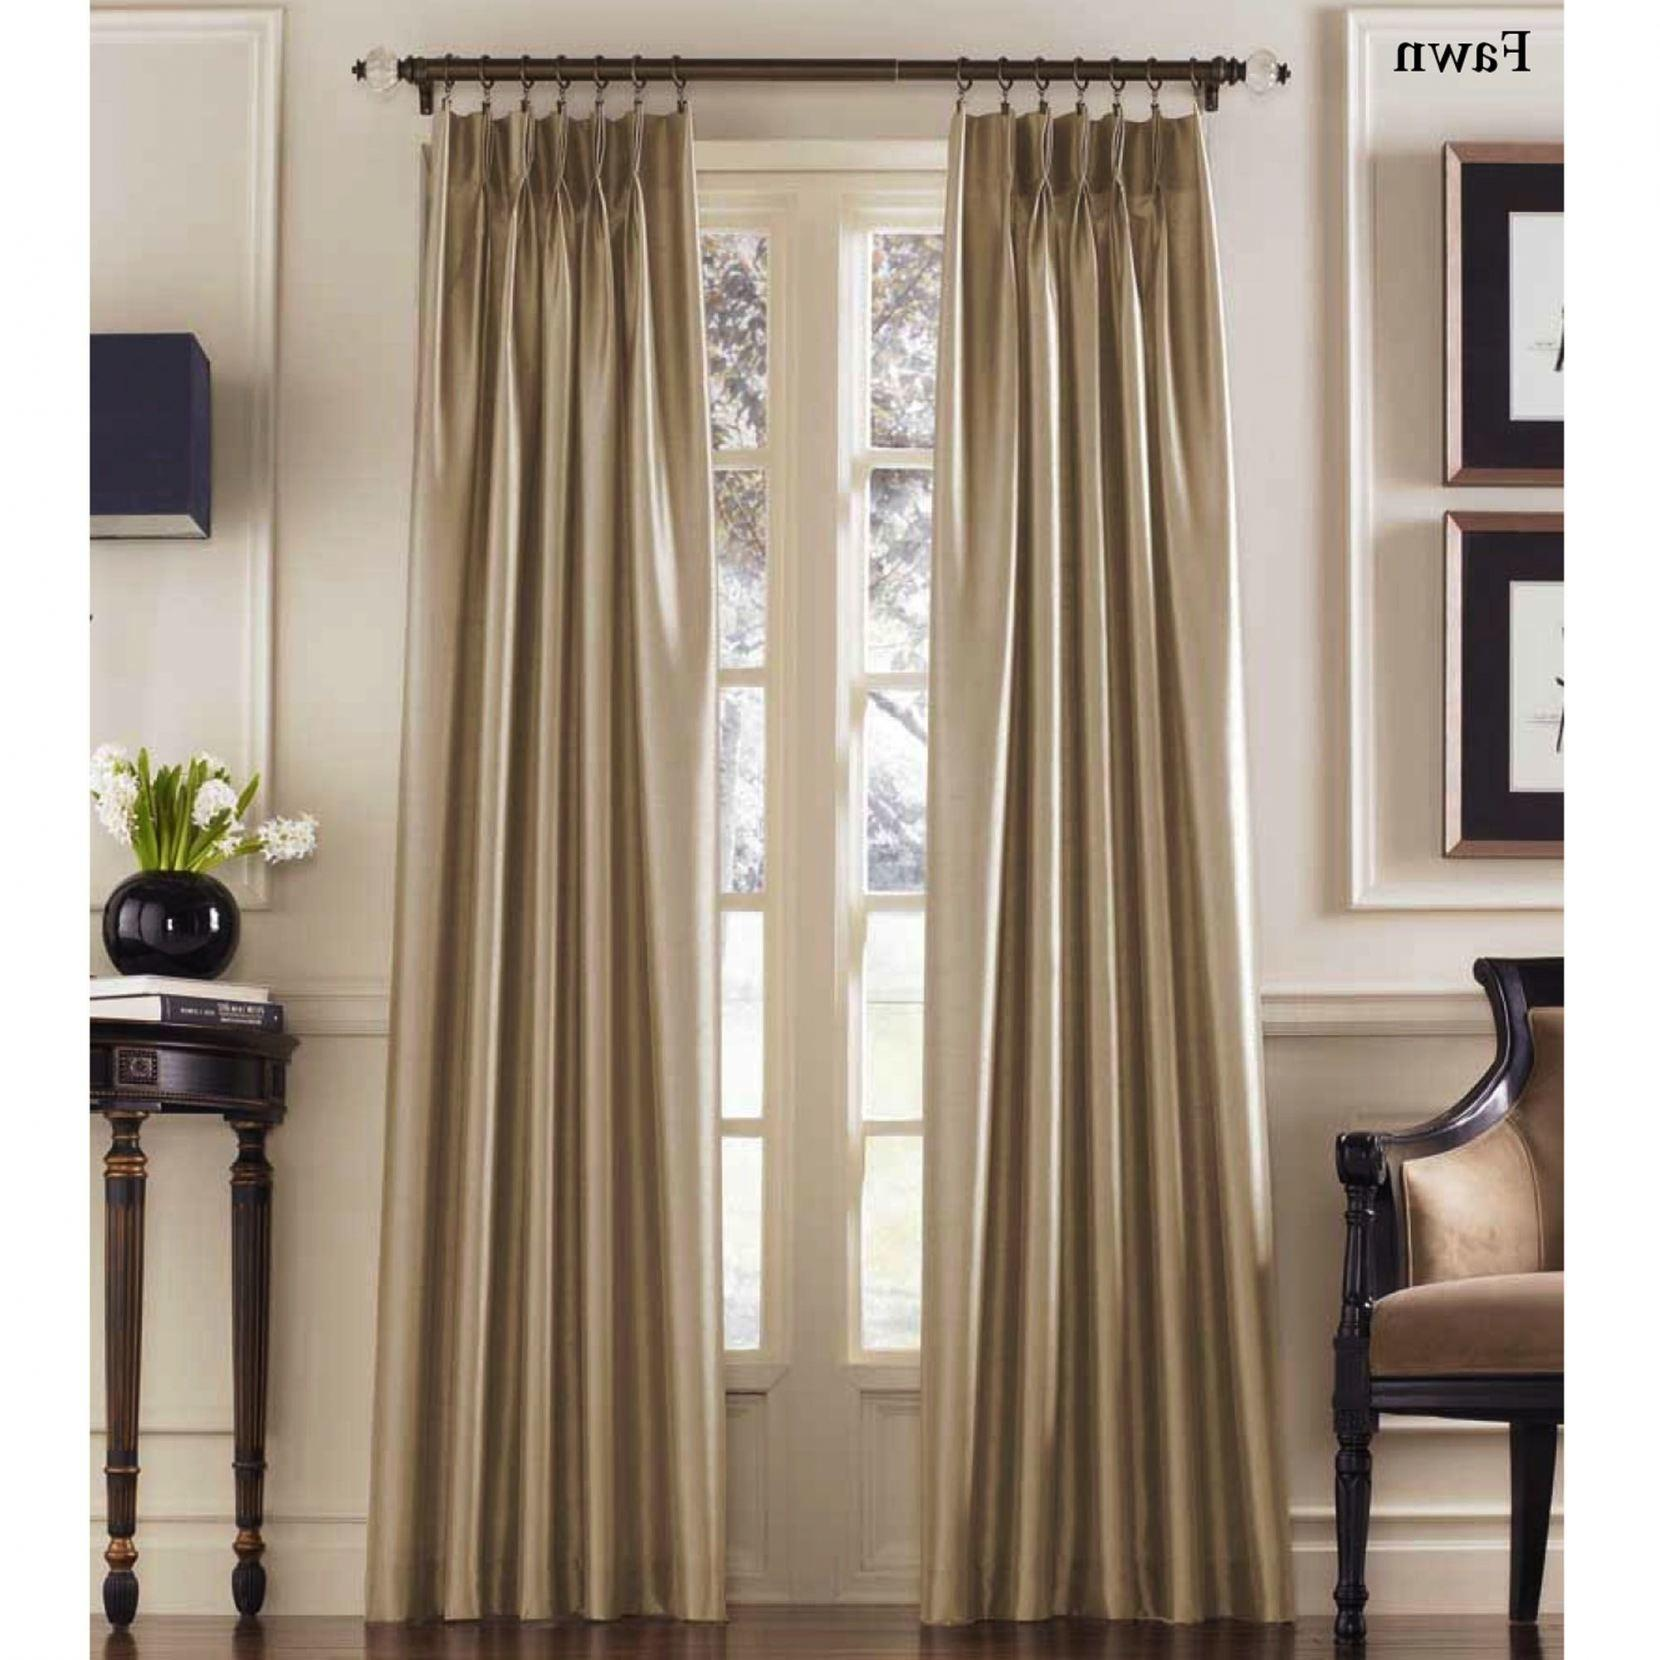 Curtains Penneys Dark Curtain Rods Cream